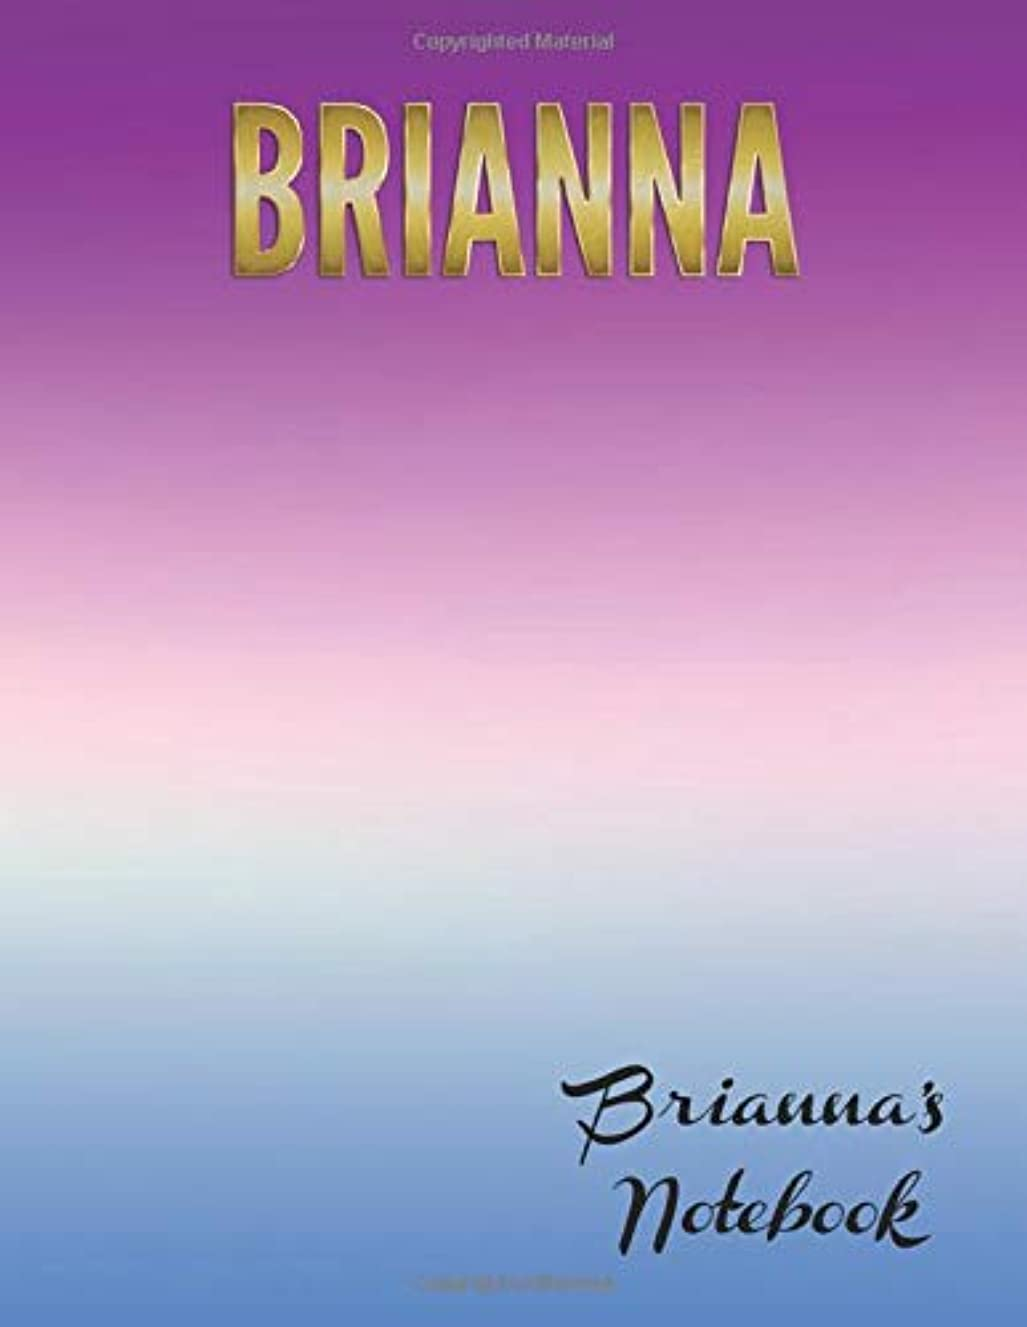 Brianna's Notebook: Large textbook sized wide-ruled personalized notebook for note-taking, journaling and creative writing, exploring your thoughts and feeling, or simply scribbling.